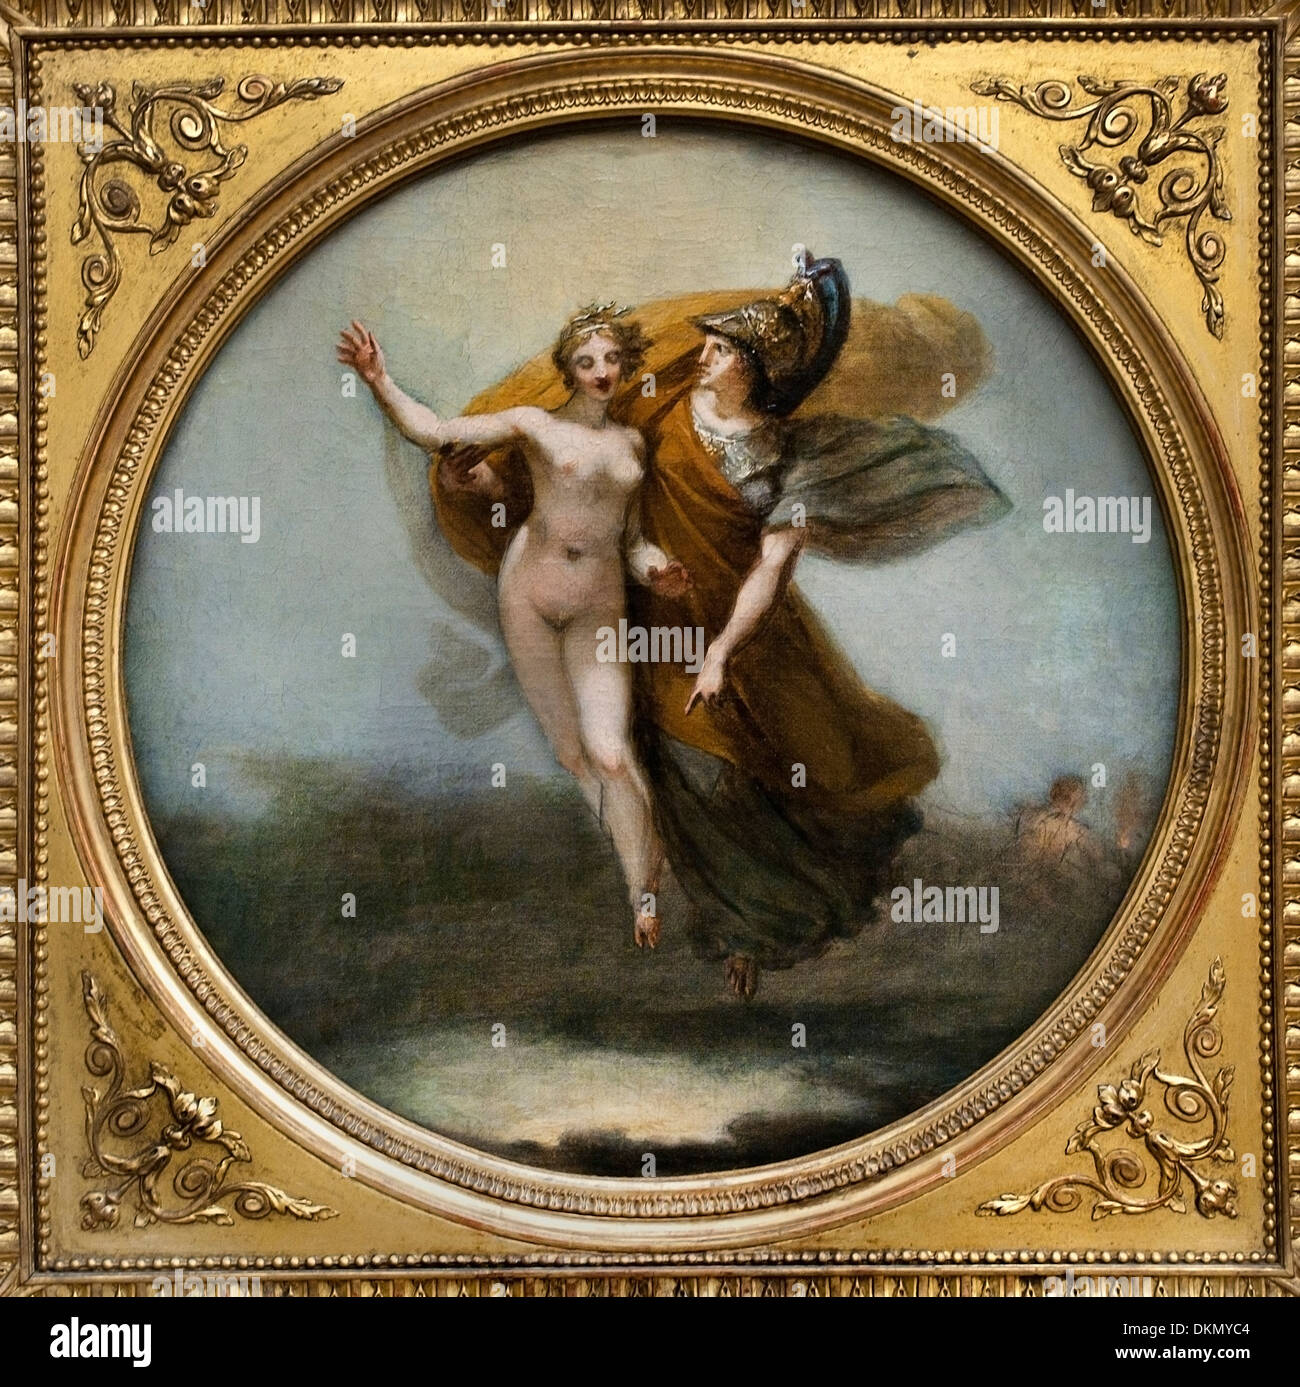 Wisdom and Truth Descending to Earth 1799 by Pierre Paul Prud'don 1758-1821 France French - Stock Image